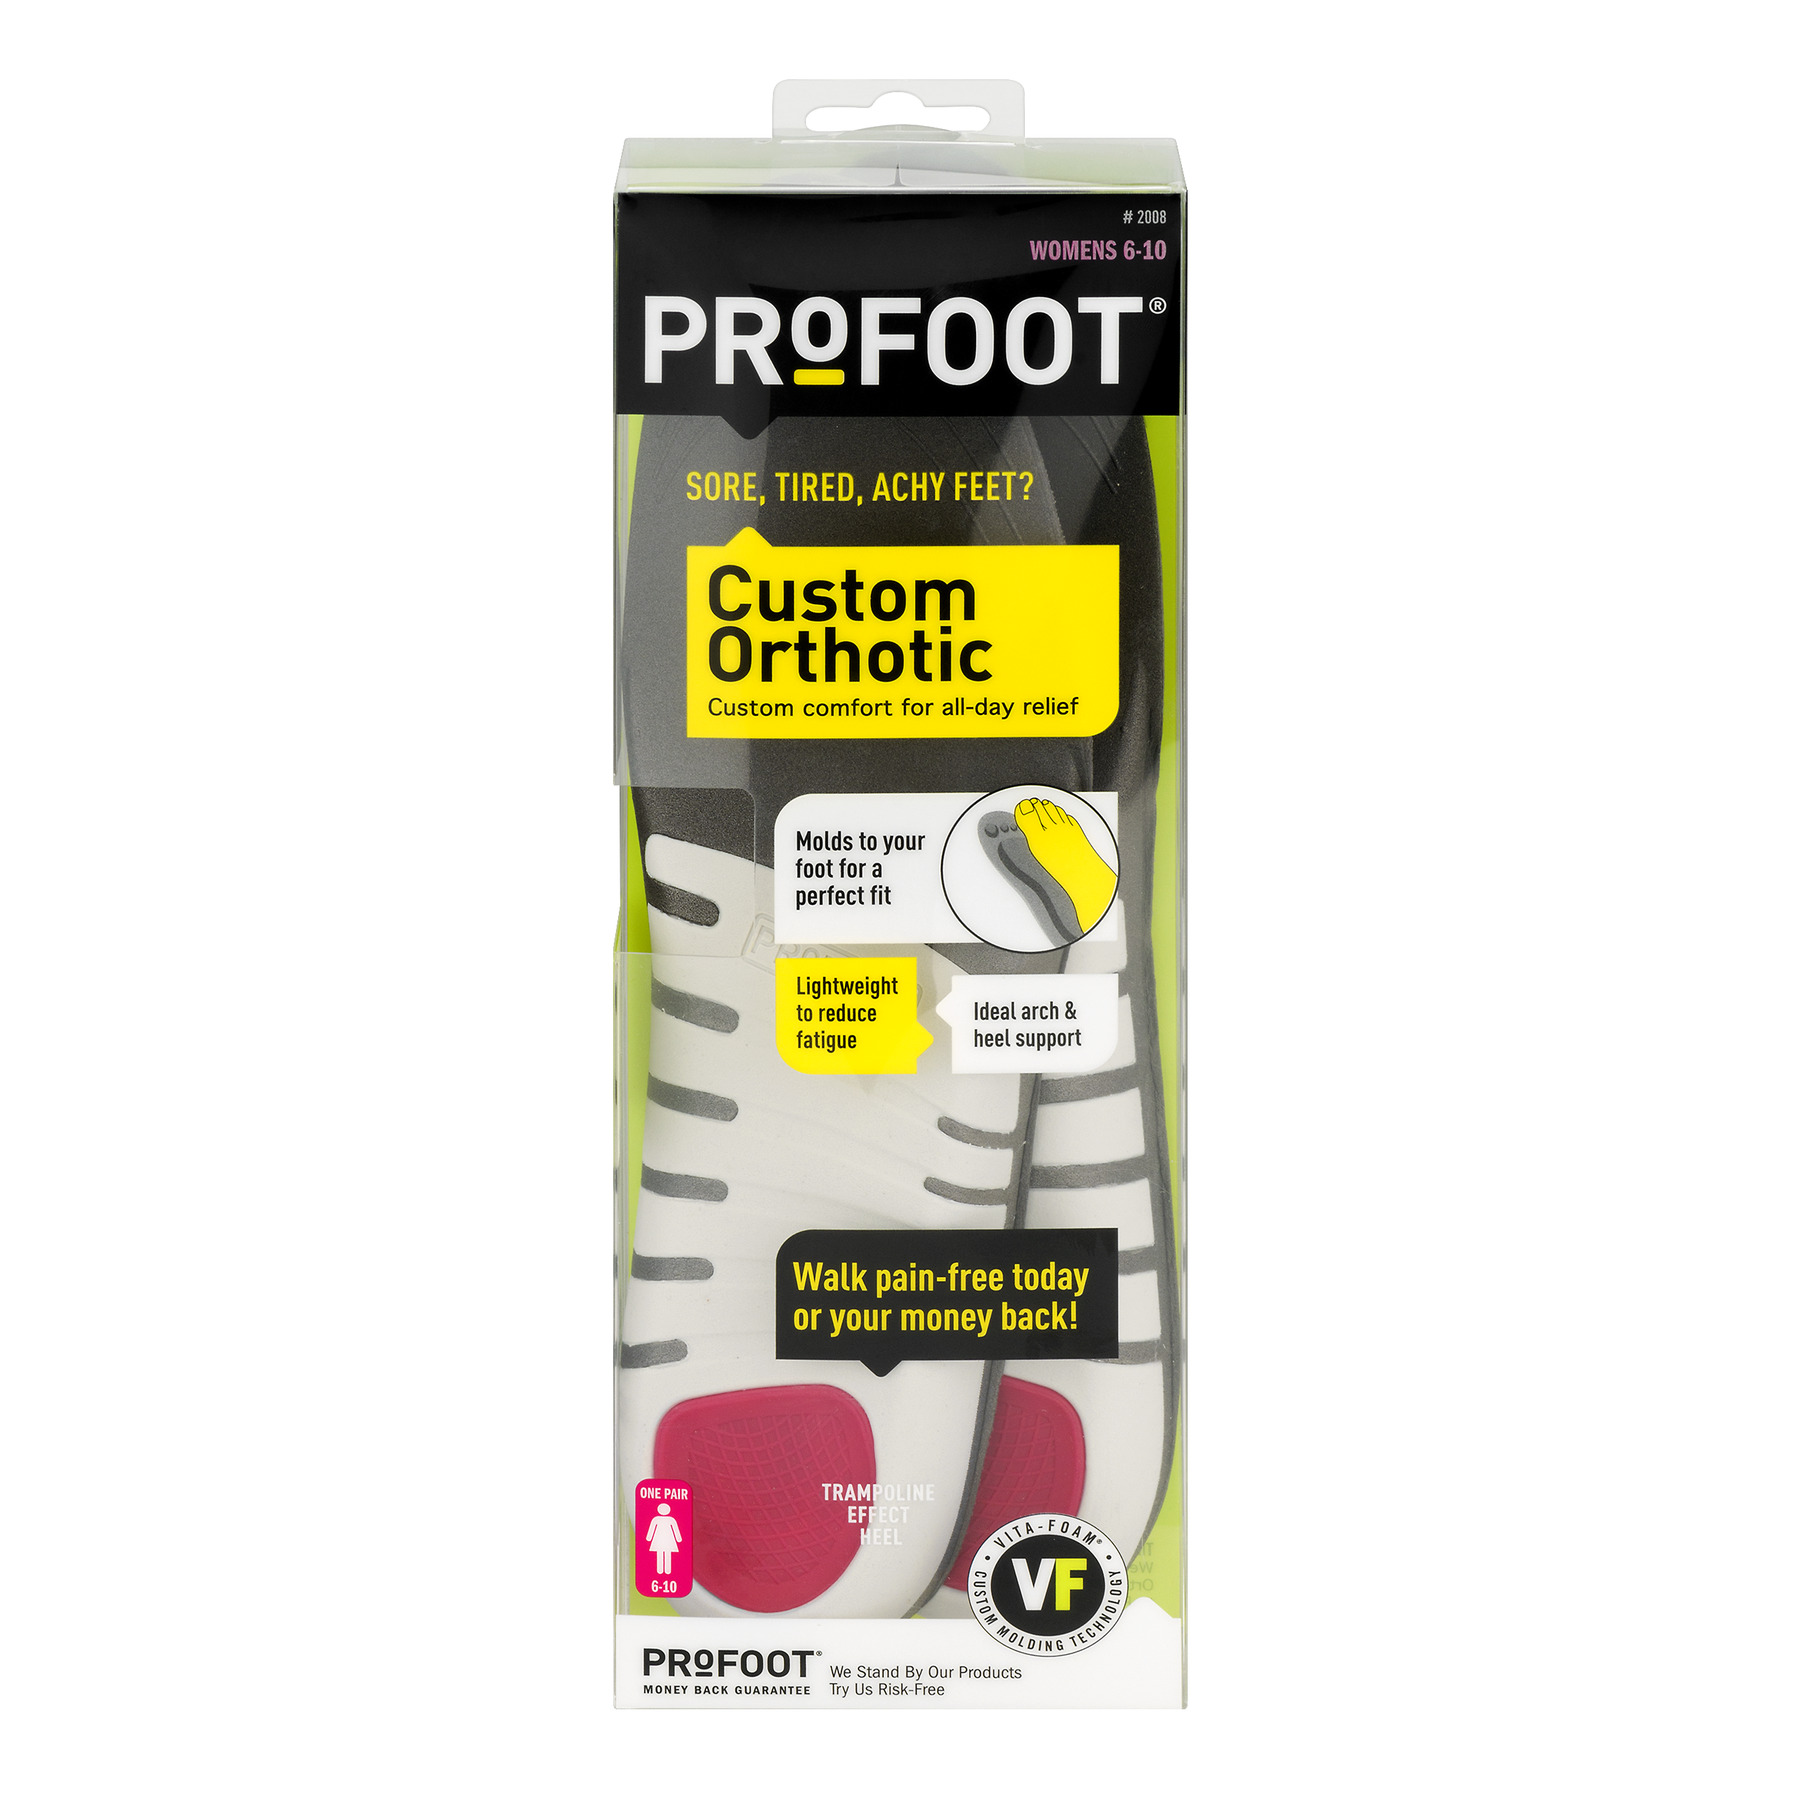 Profoot Custom Orthotic Women 6-10 - 1 CT1.0 CT